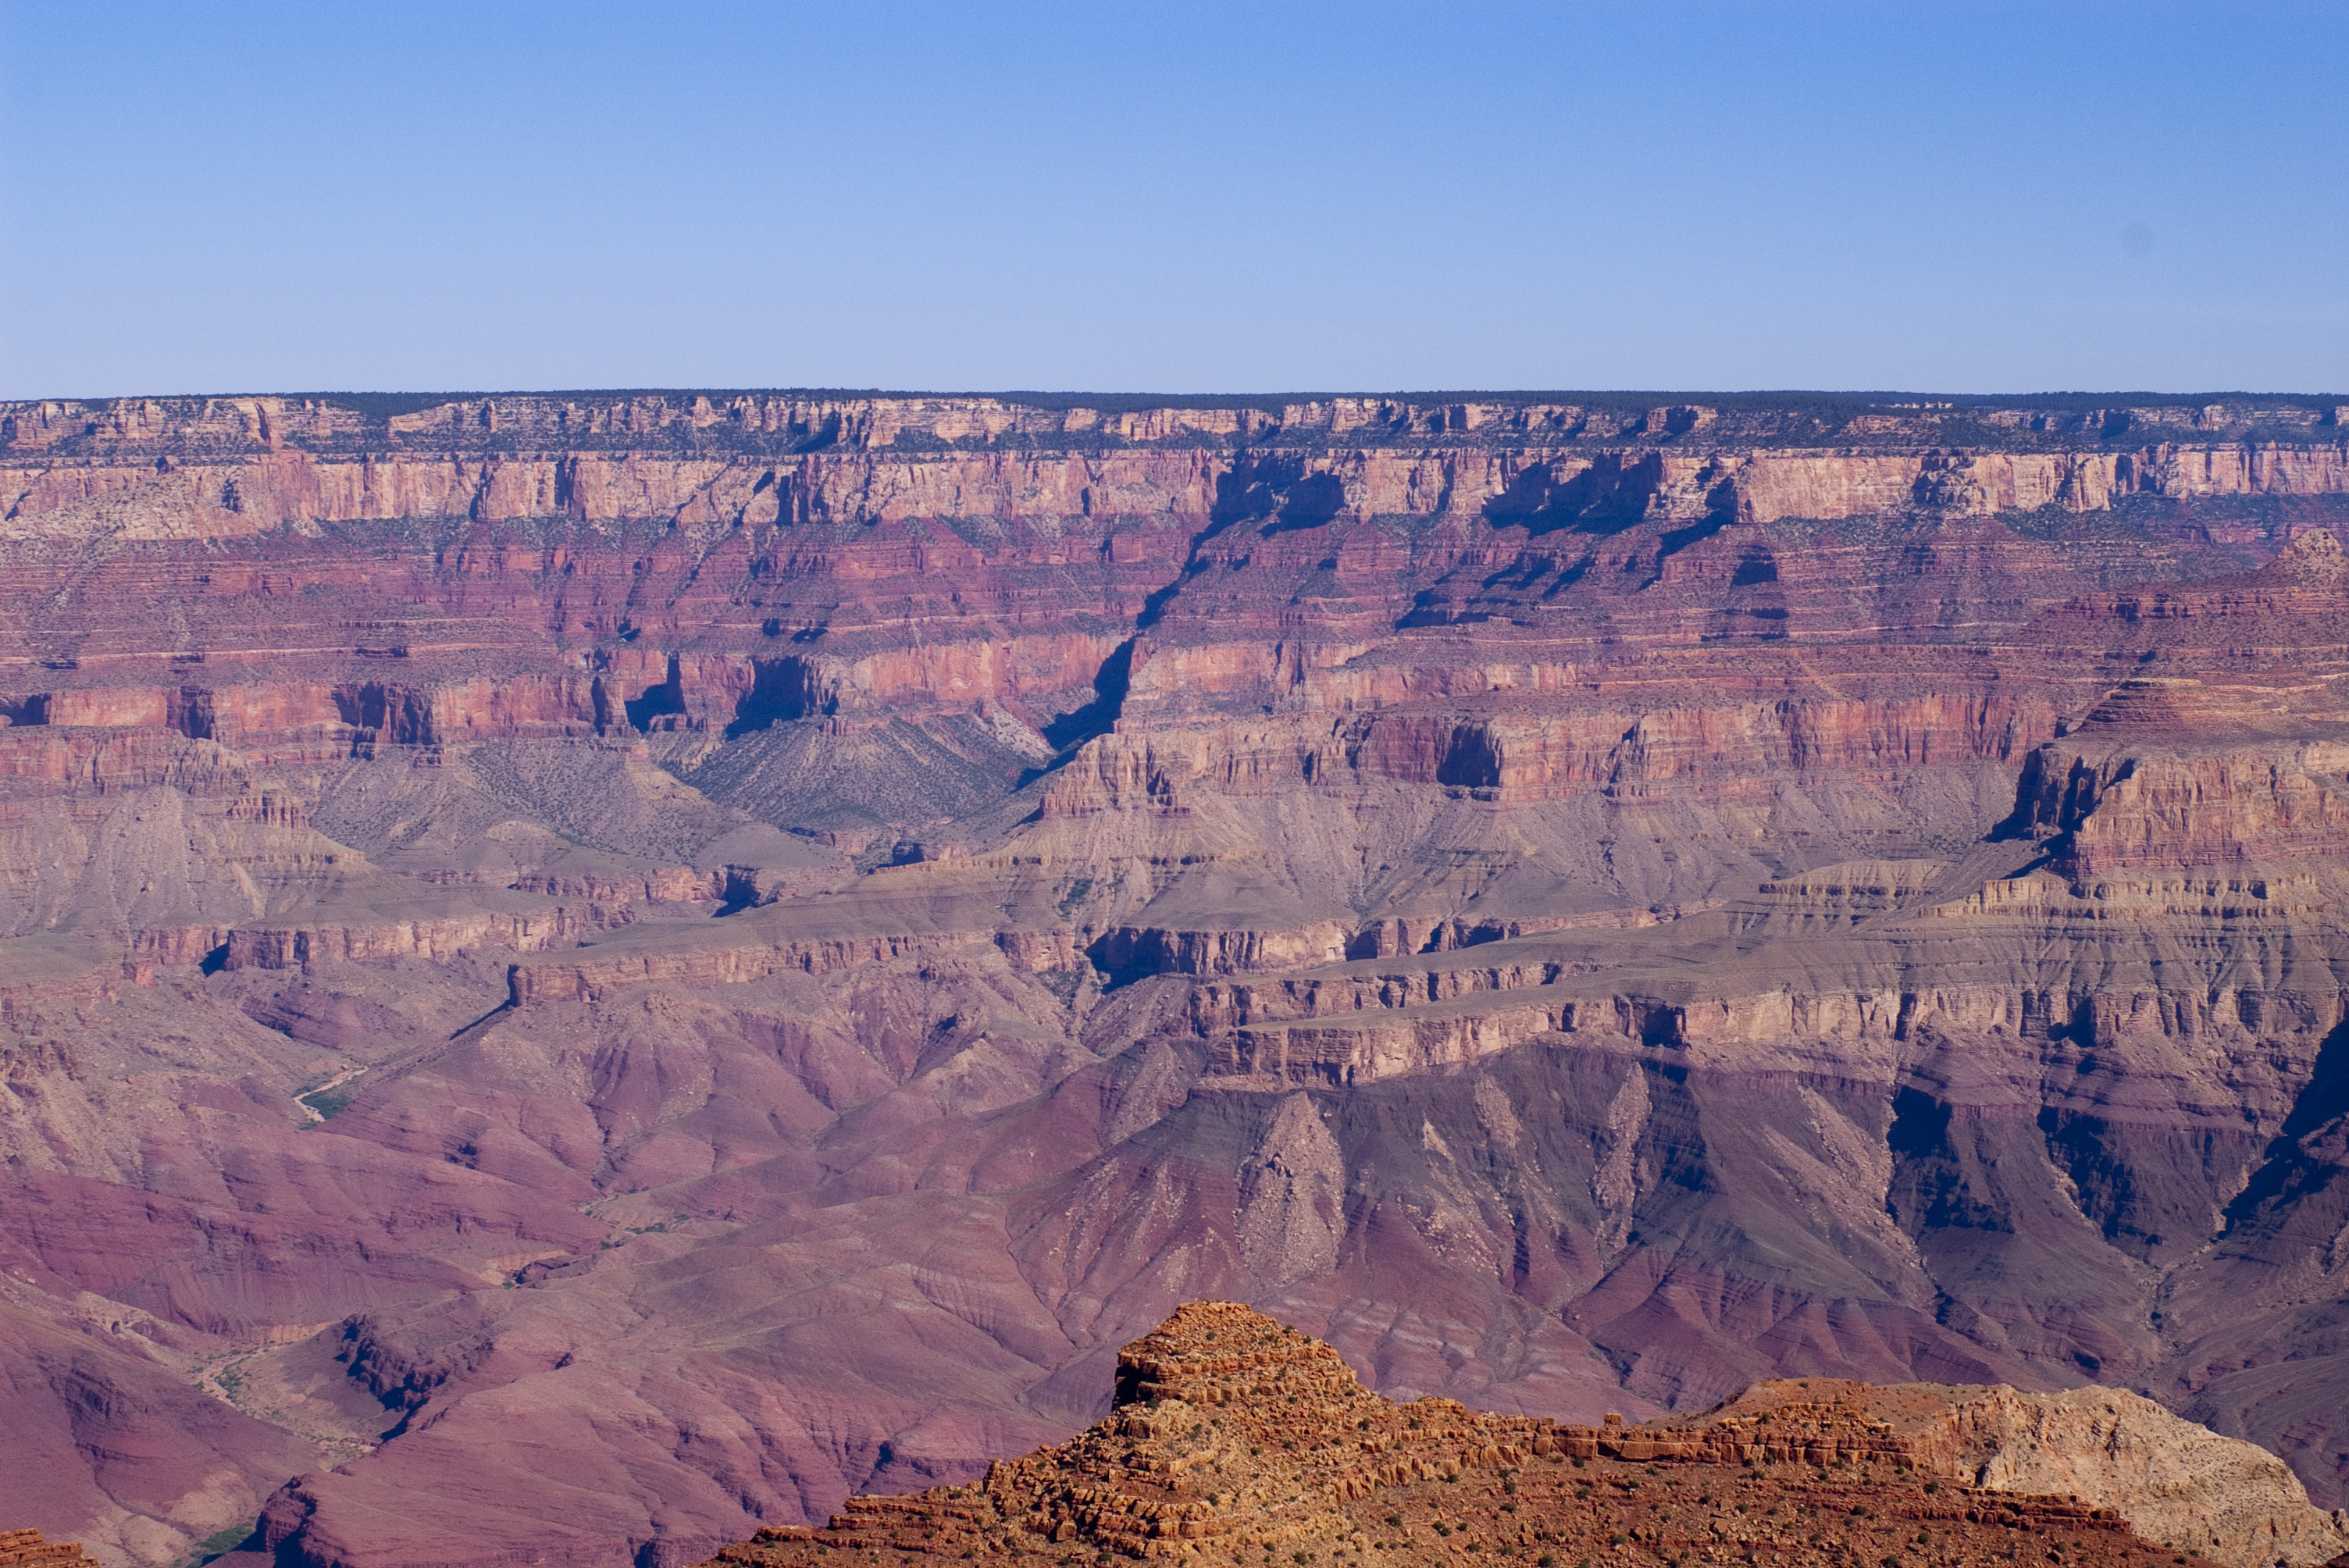 Free Stock Photo 3171 Panoramic Grand Canyon Freeimageslive